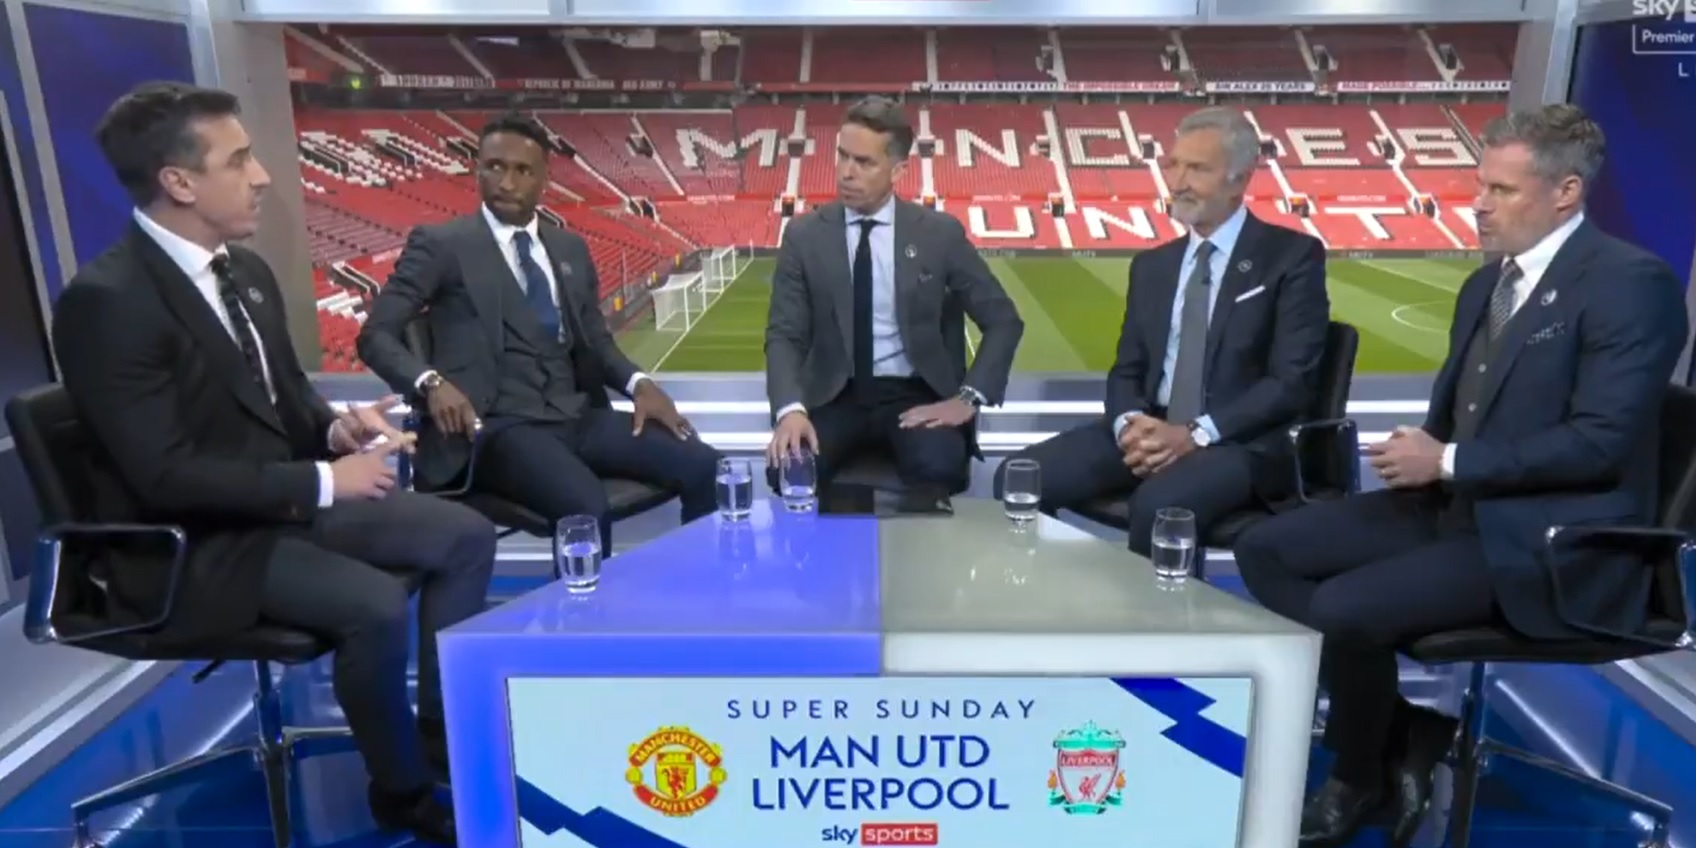 (Video) Souness and Neville get into heated argument ahead of Liverpool clash over Cristiano Ronaldo